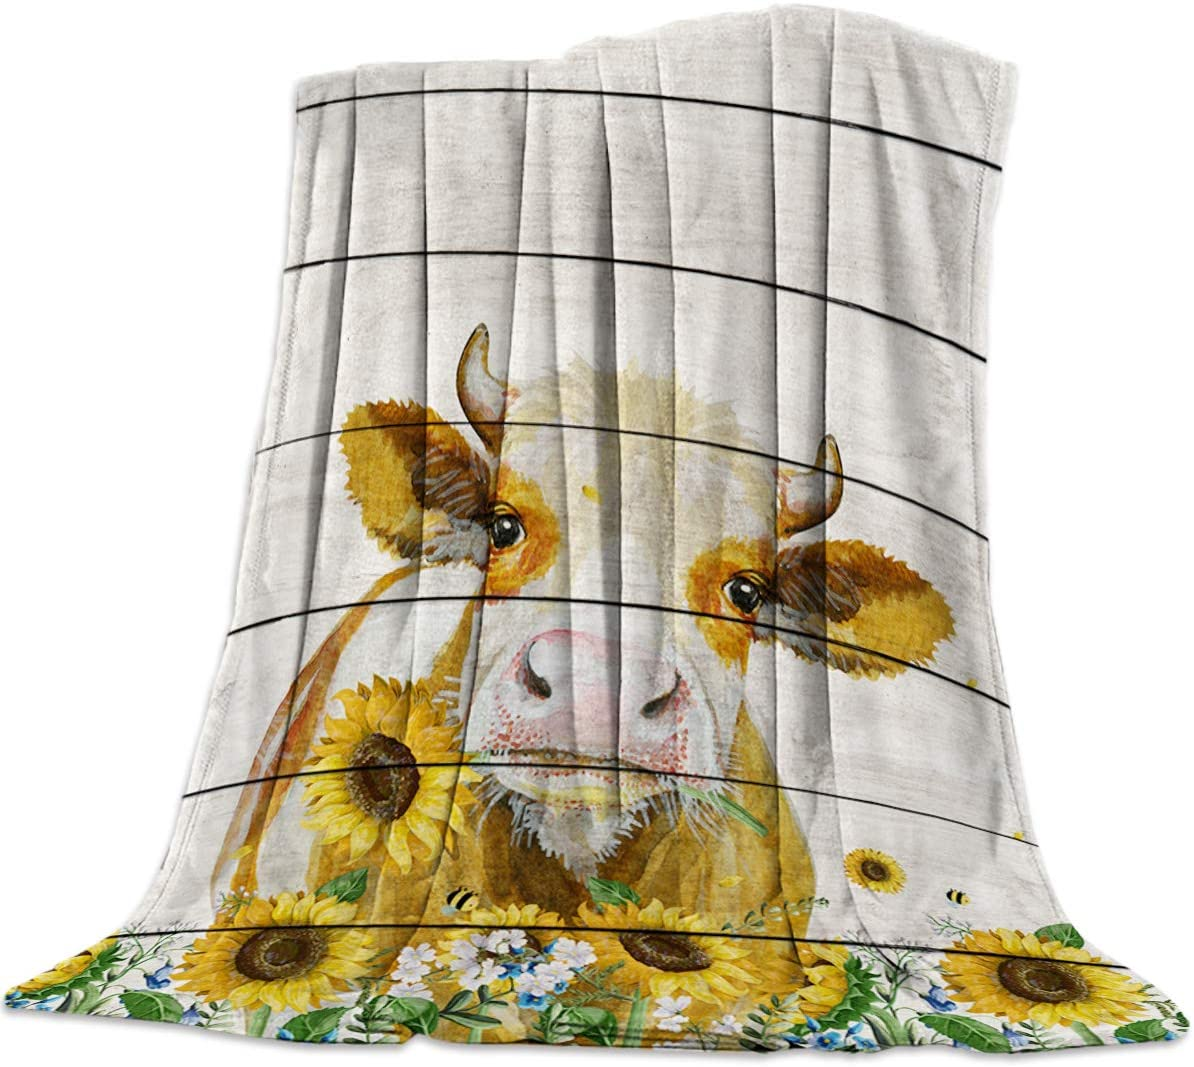 Flannel Fleece Luxury Blanket All Season Ultra Soft Lightweight Thermal Throw Blankets, Warm Fuzzy Plush Nap Blanket for Bed Couch Sofa, Western Country Farmhouse Cow with Sunflower 40x50 Inch